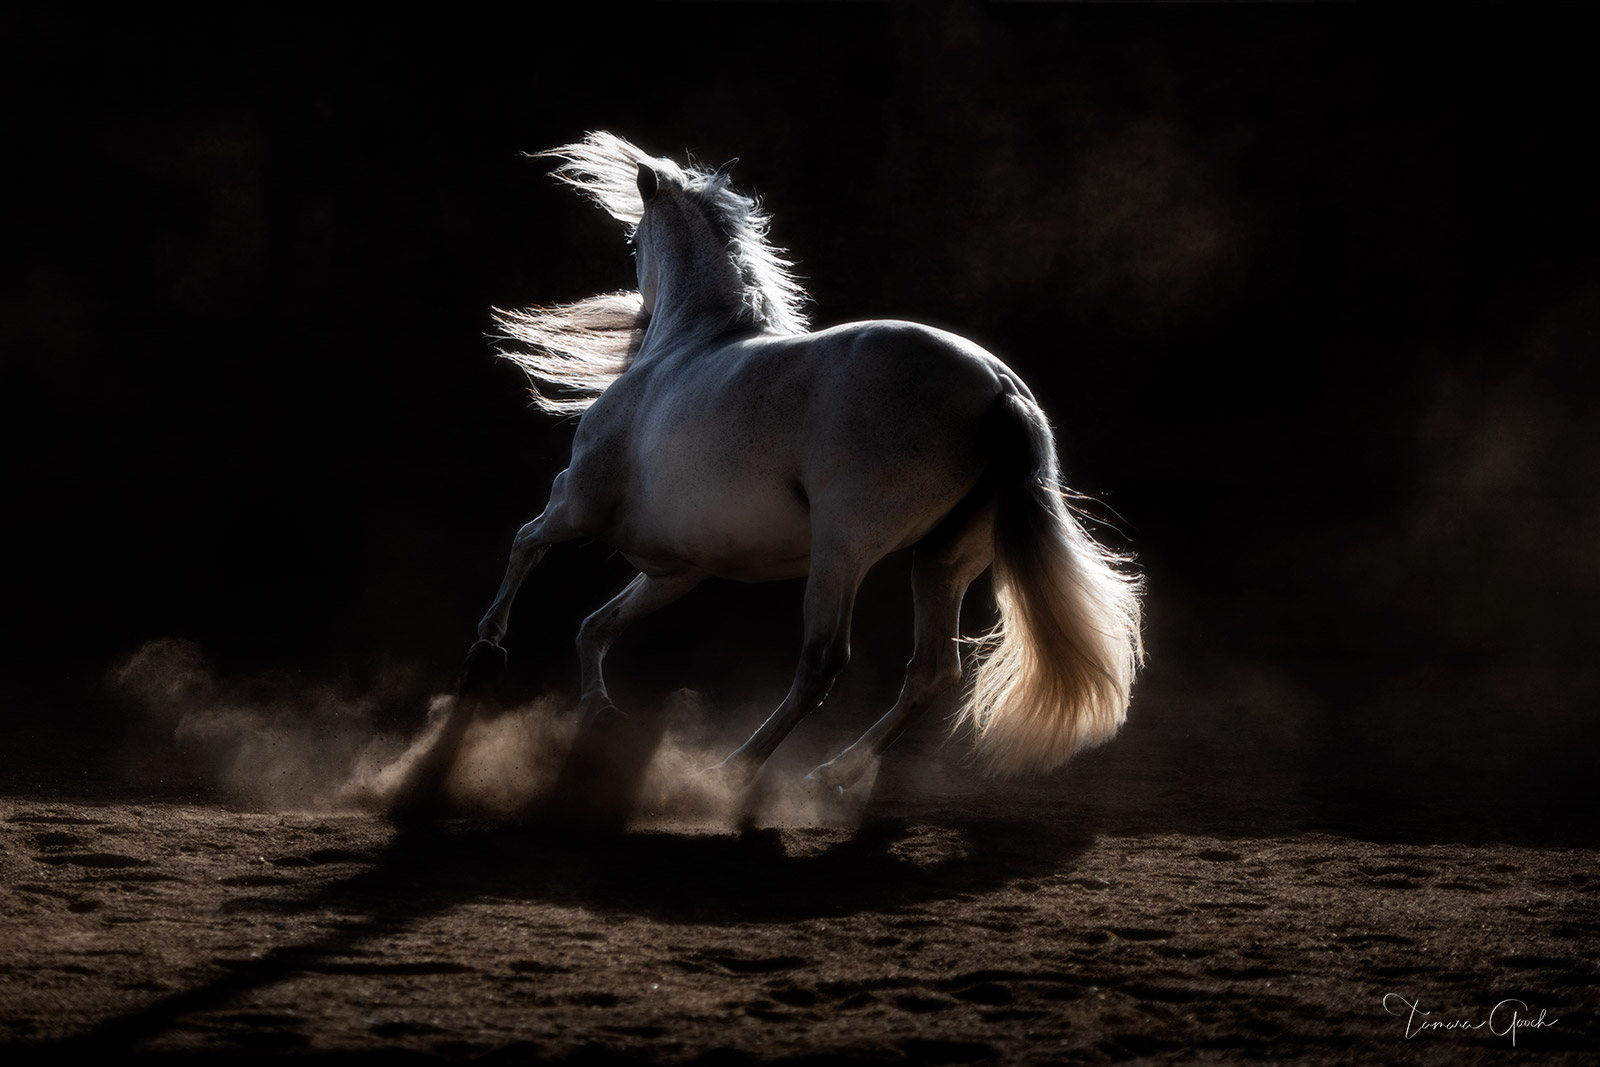 a photograph of a horse spinning around at liberty in low light in an indoor arena.